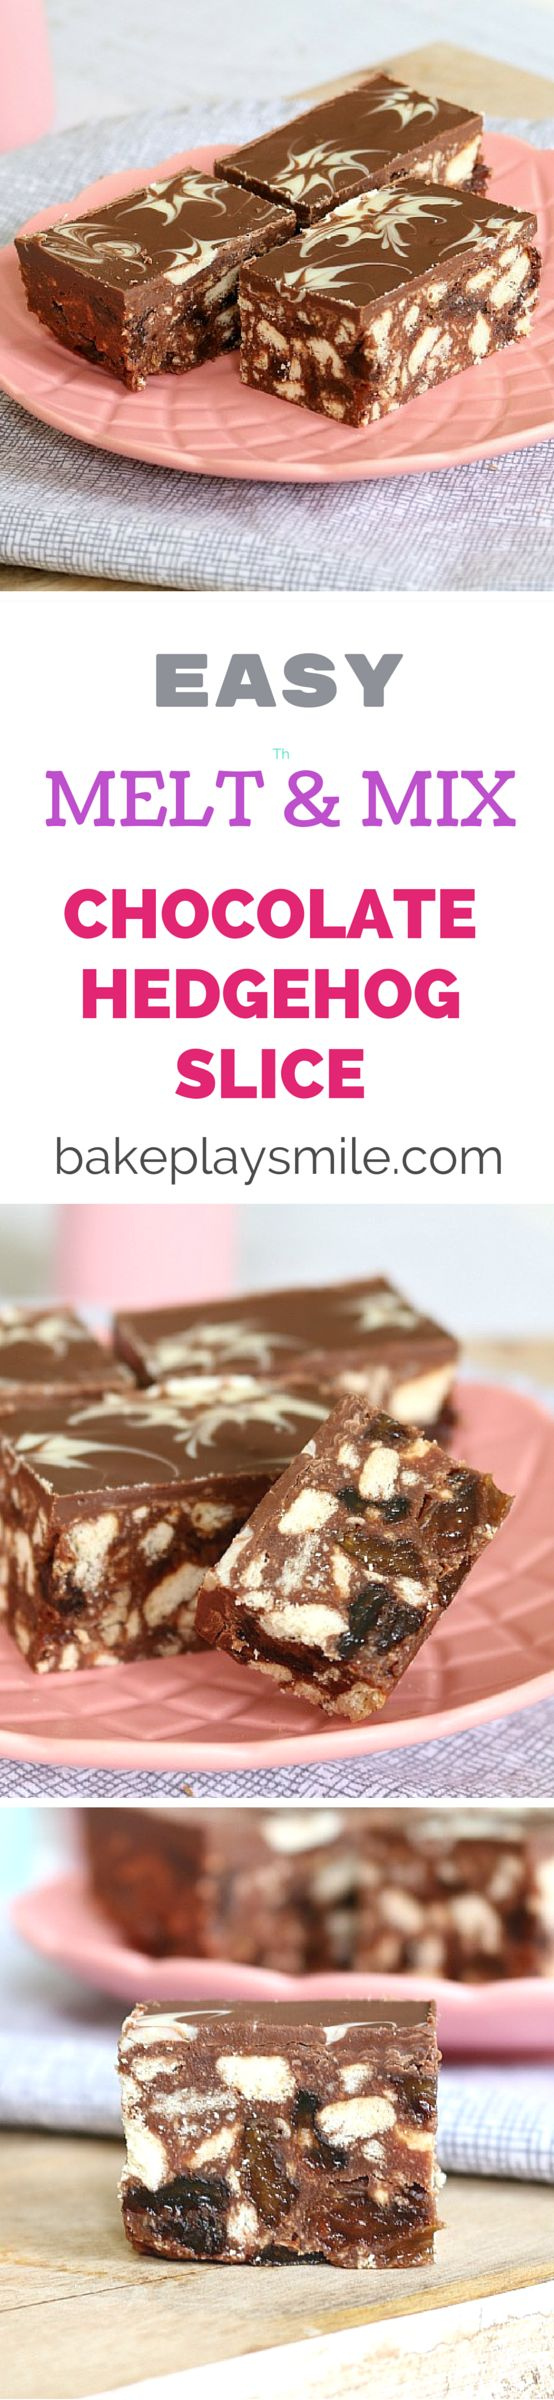 This is a family recipe that we've been using forever! It's the easiest No-Bake Chocolate Hedgehog Slice - all you do is melt and mix the ingredients together! I like to make mine nut-free - but you can add chopped nuts if you like! #hedgehog #slice #bars #nobake #chocolate #easy #thermomix #conventional